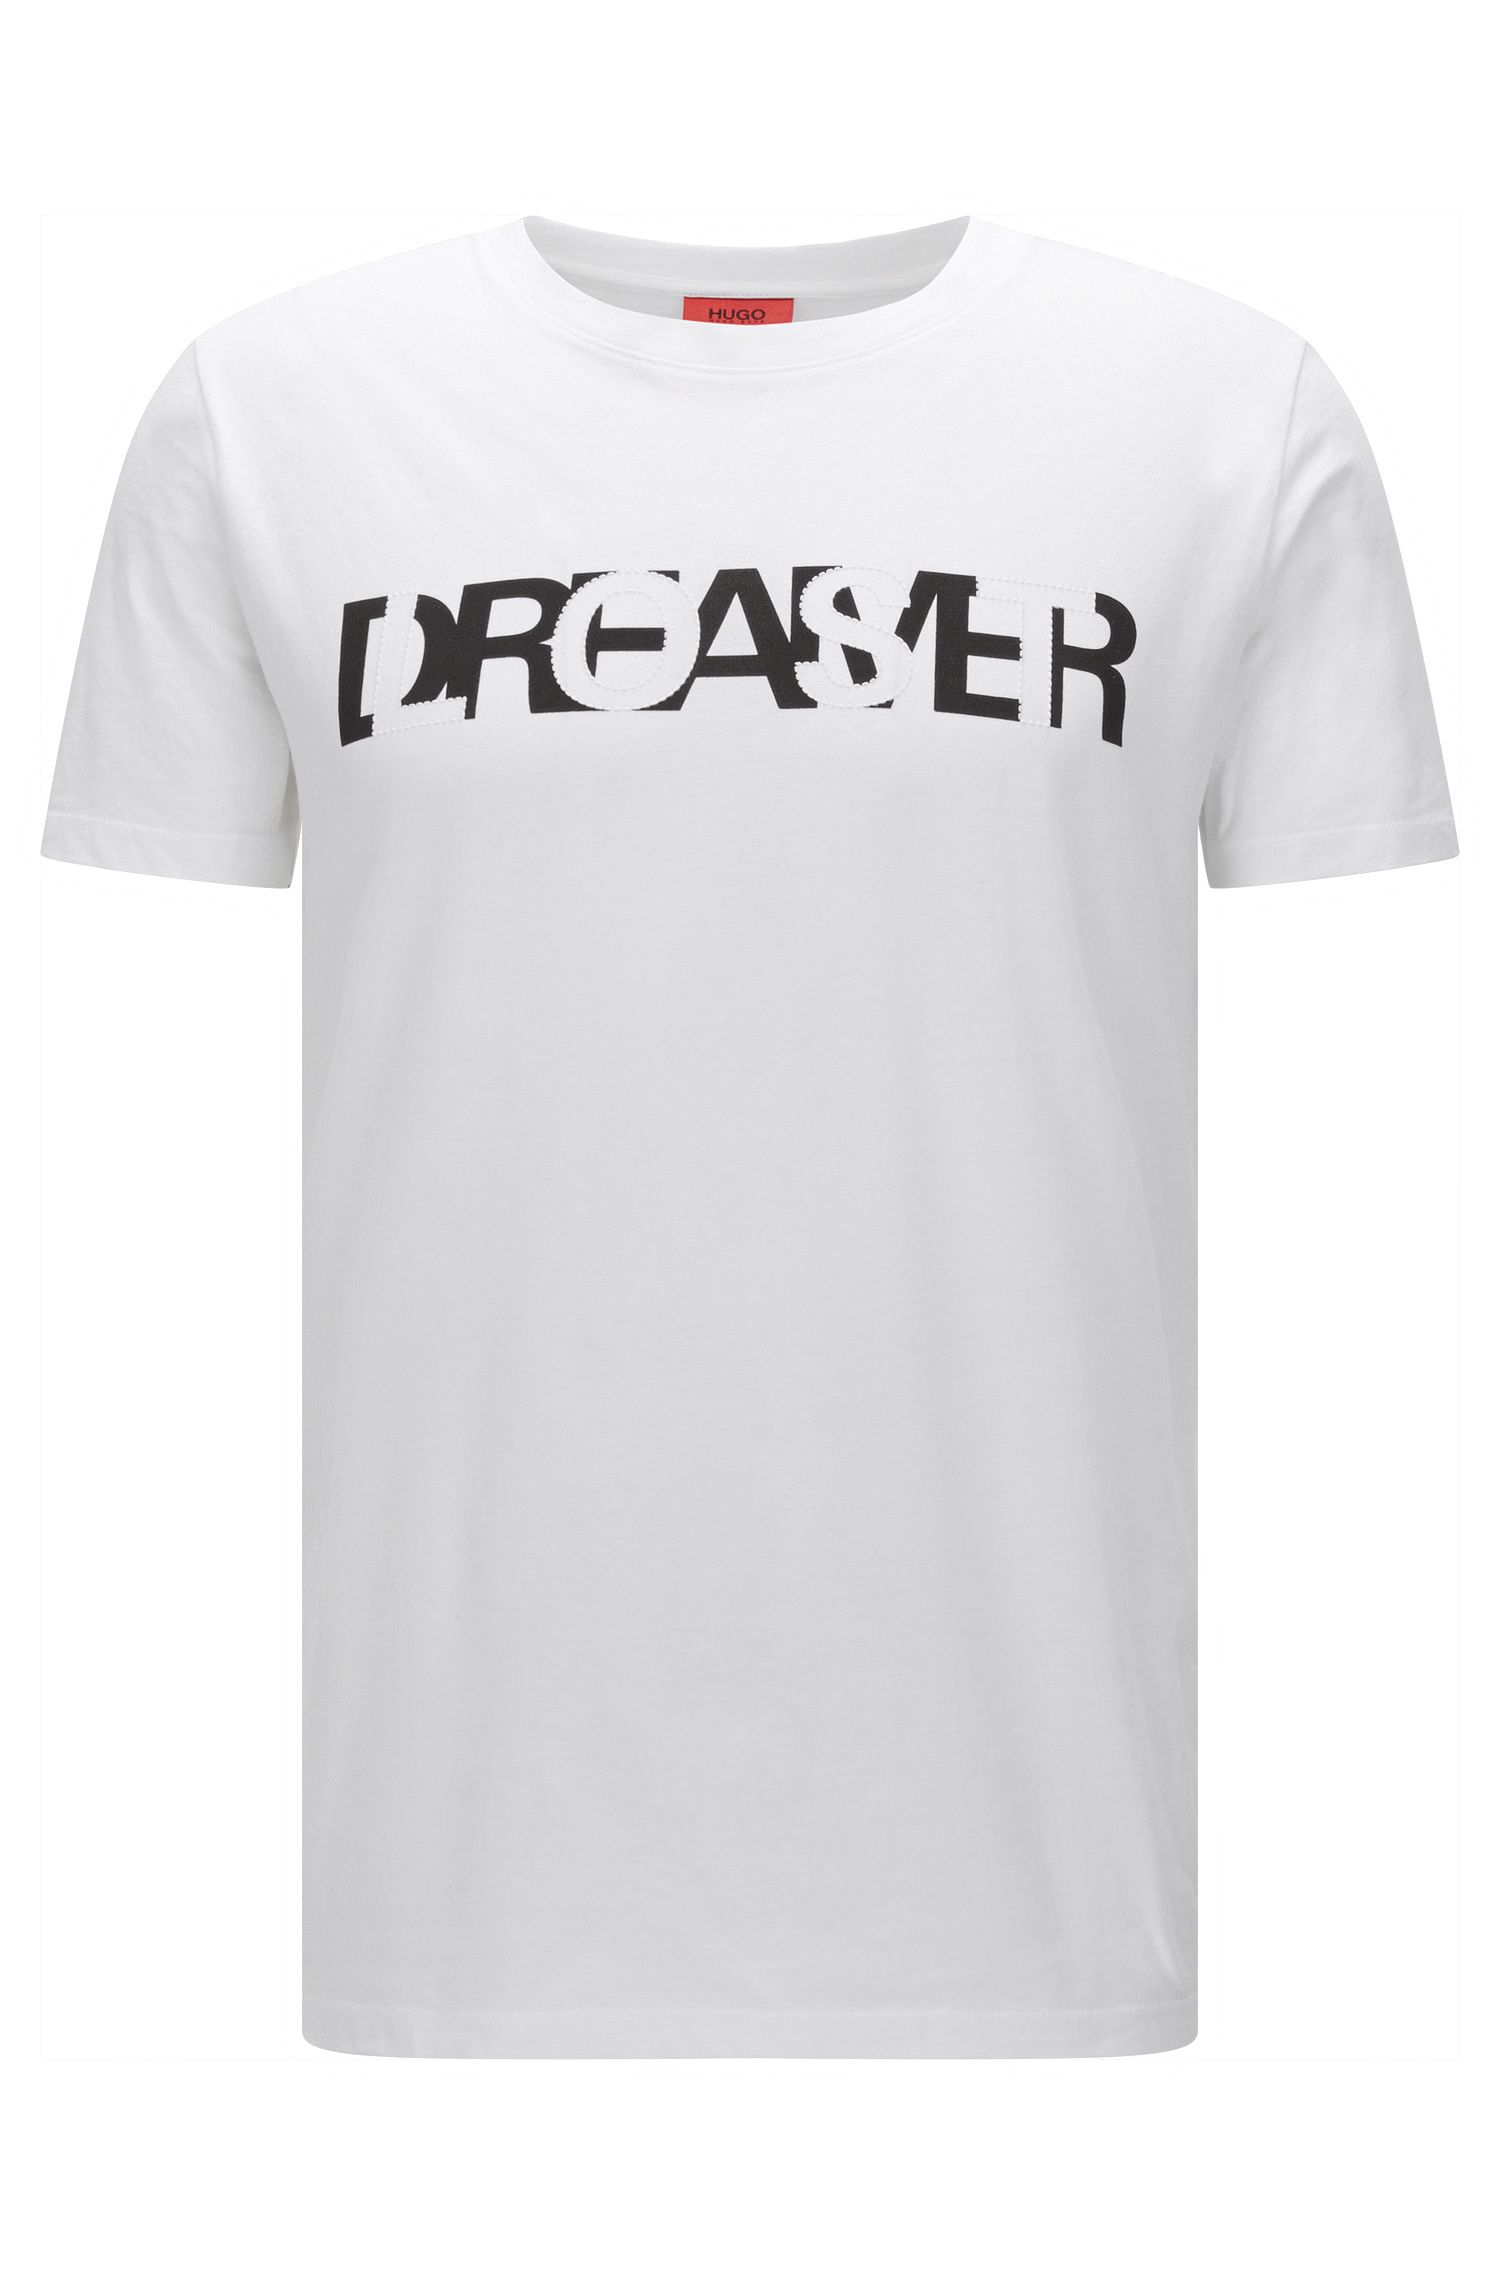 Cotton Graphic T-Shirt | Dreamer